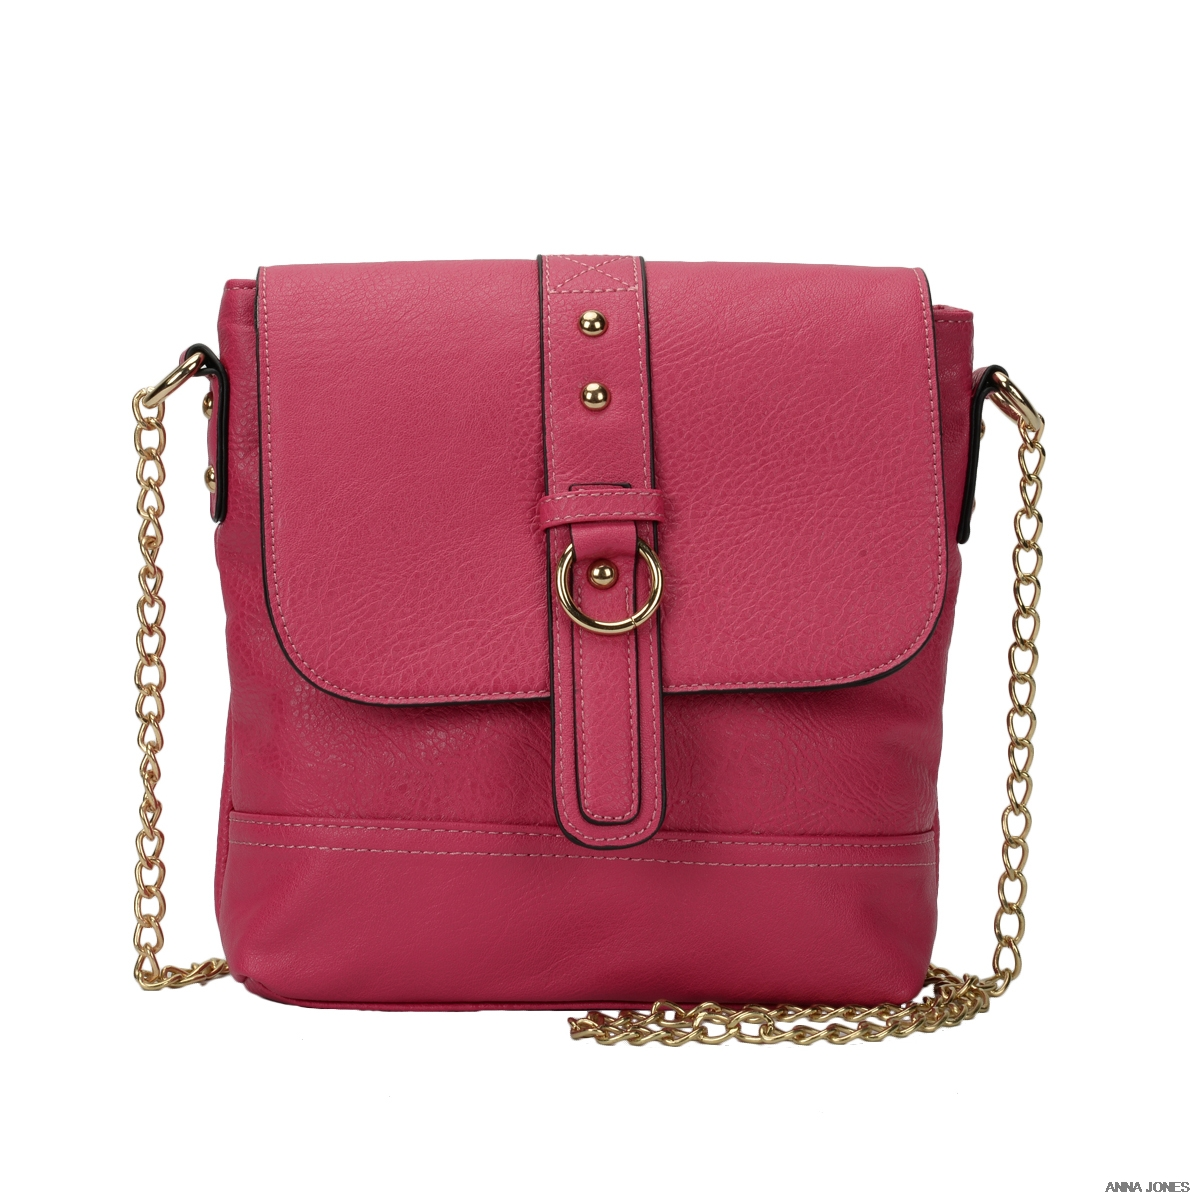 56061b4a1e1 AFKOMST Mini Small Womens Shoulder Bag Online Shopping Bags Side Bags Pu  Leather Messenger Bag |QQ2062-in Shoulder Bags from Luggage & Bags on ...